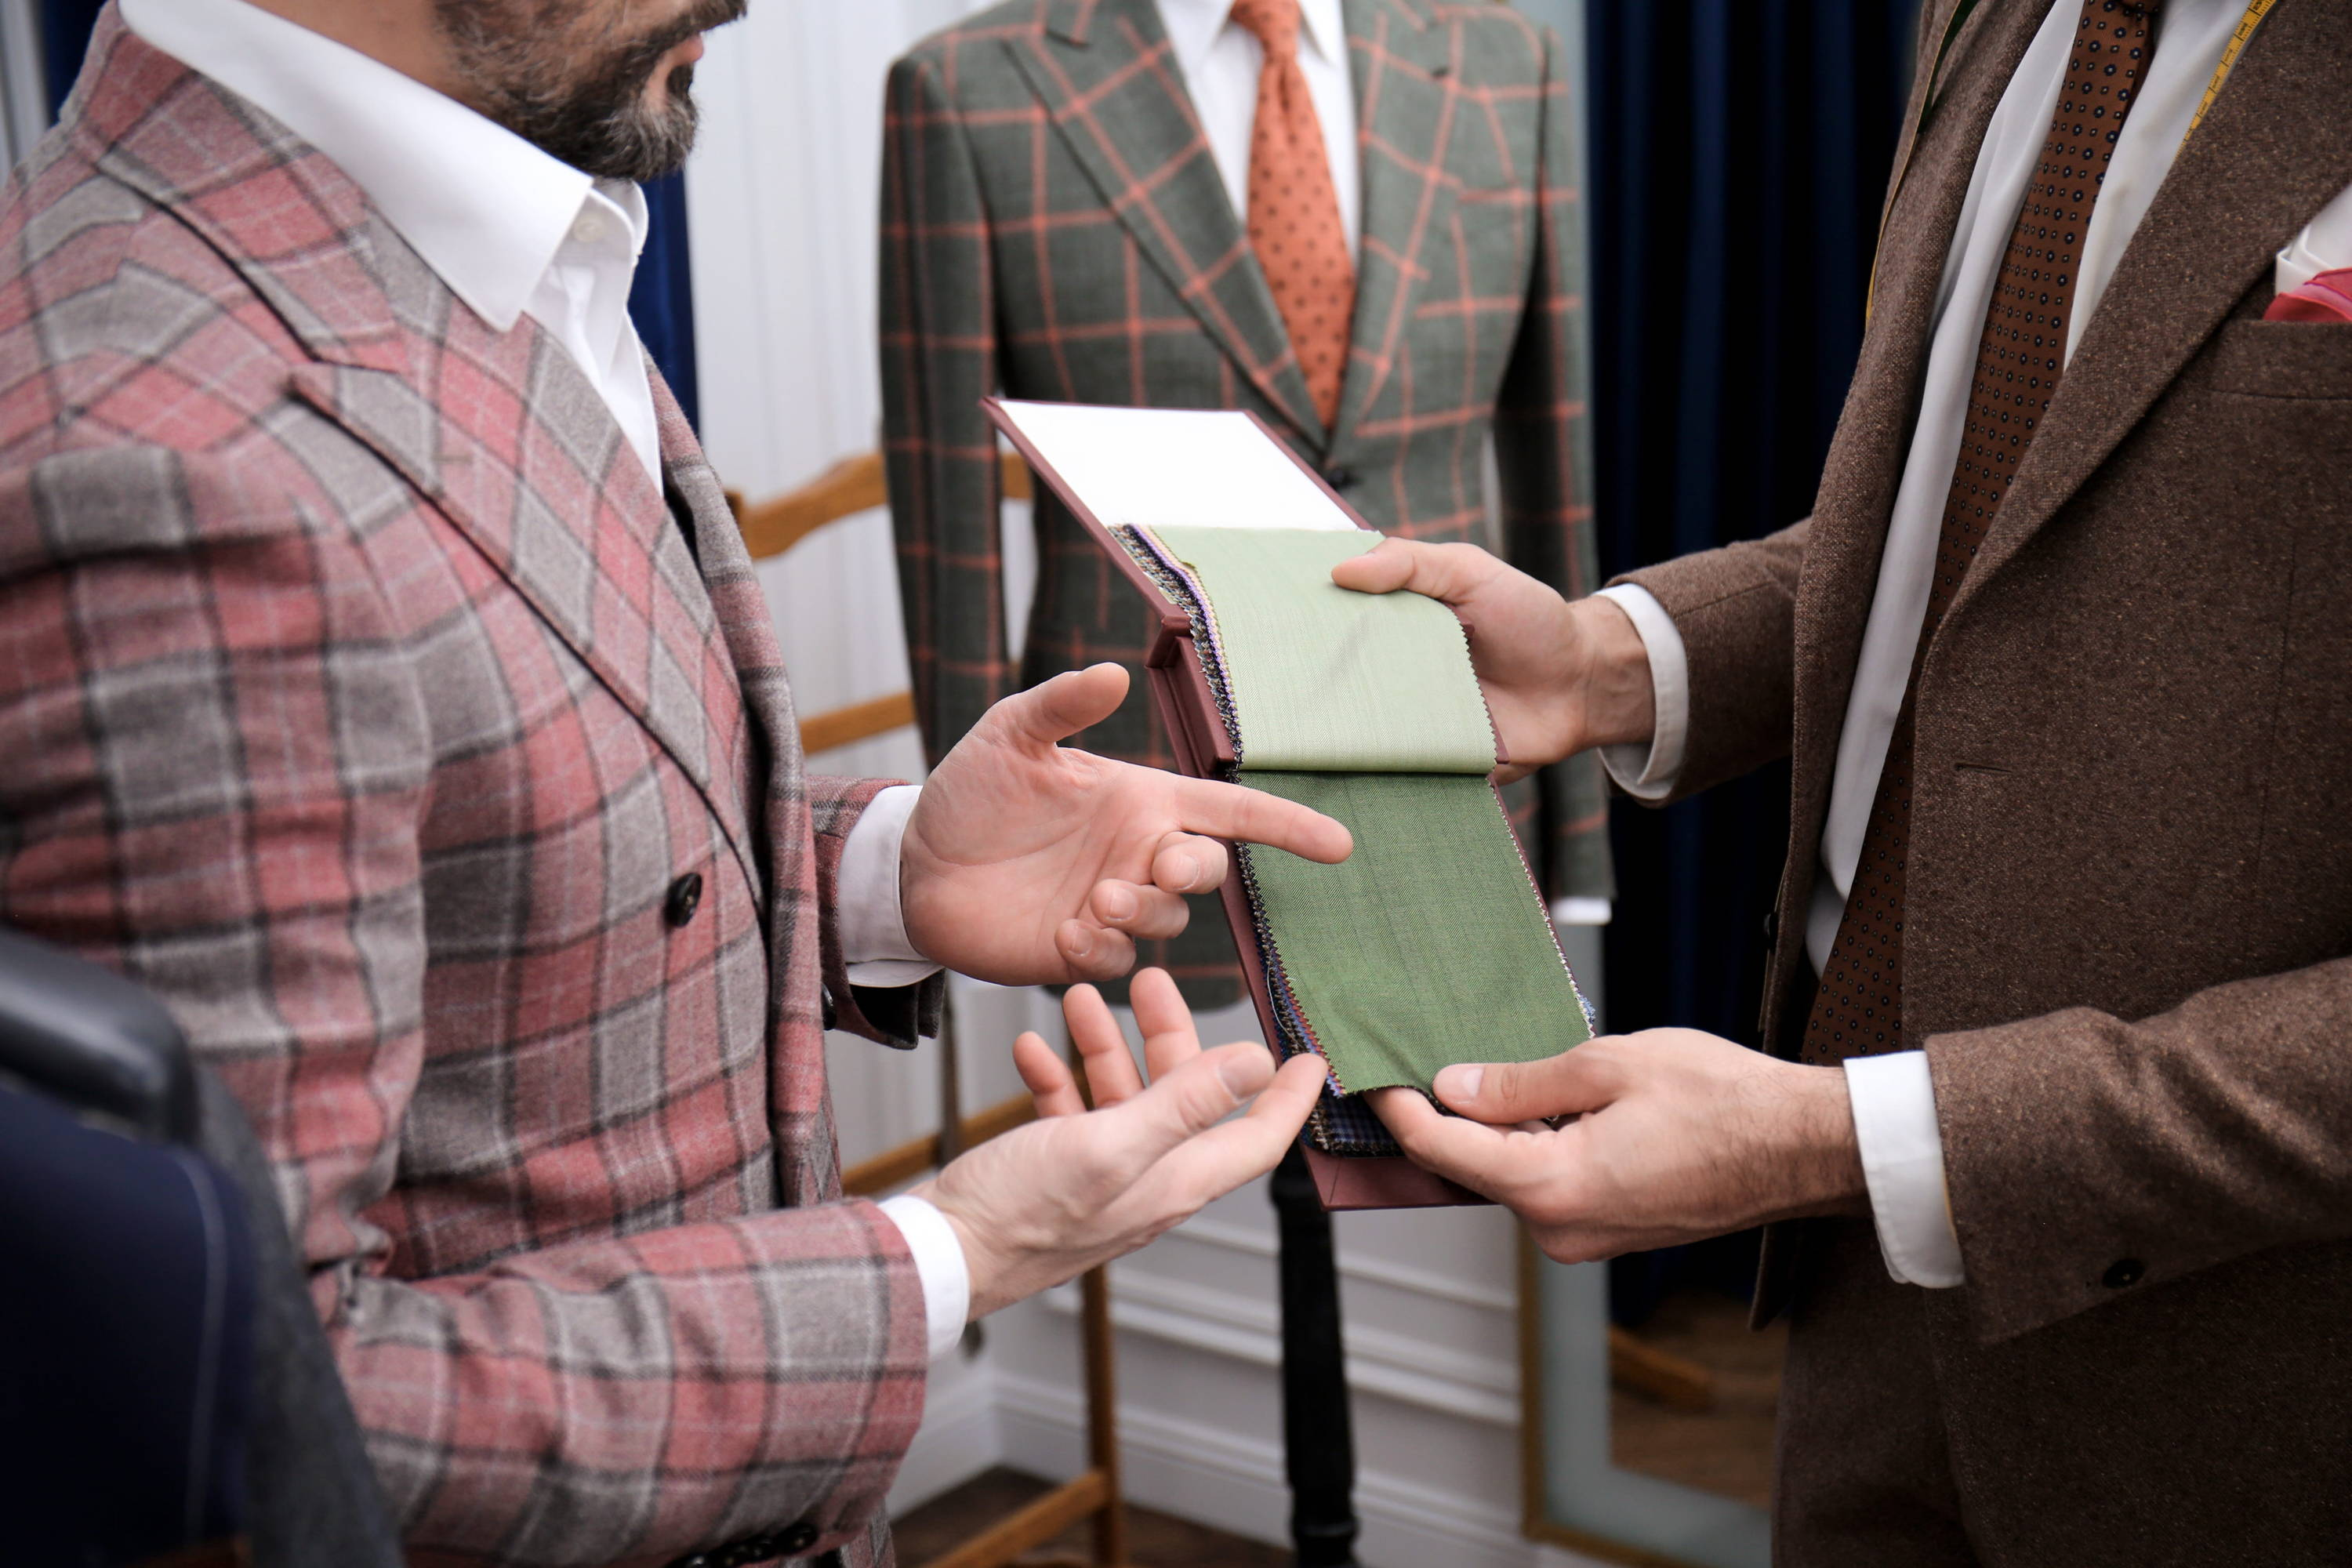 Tailor and client discuss wool fabric swatches for a bespoke suit